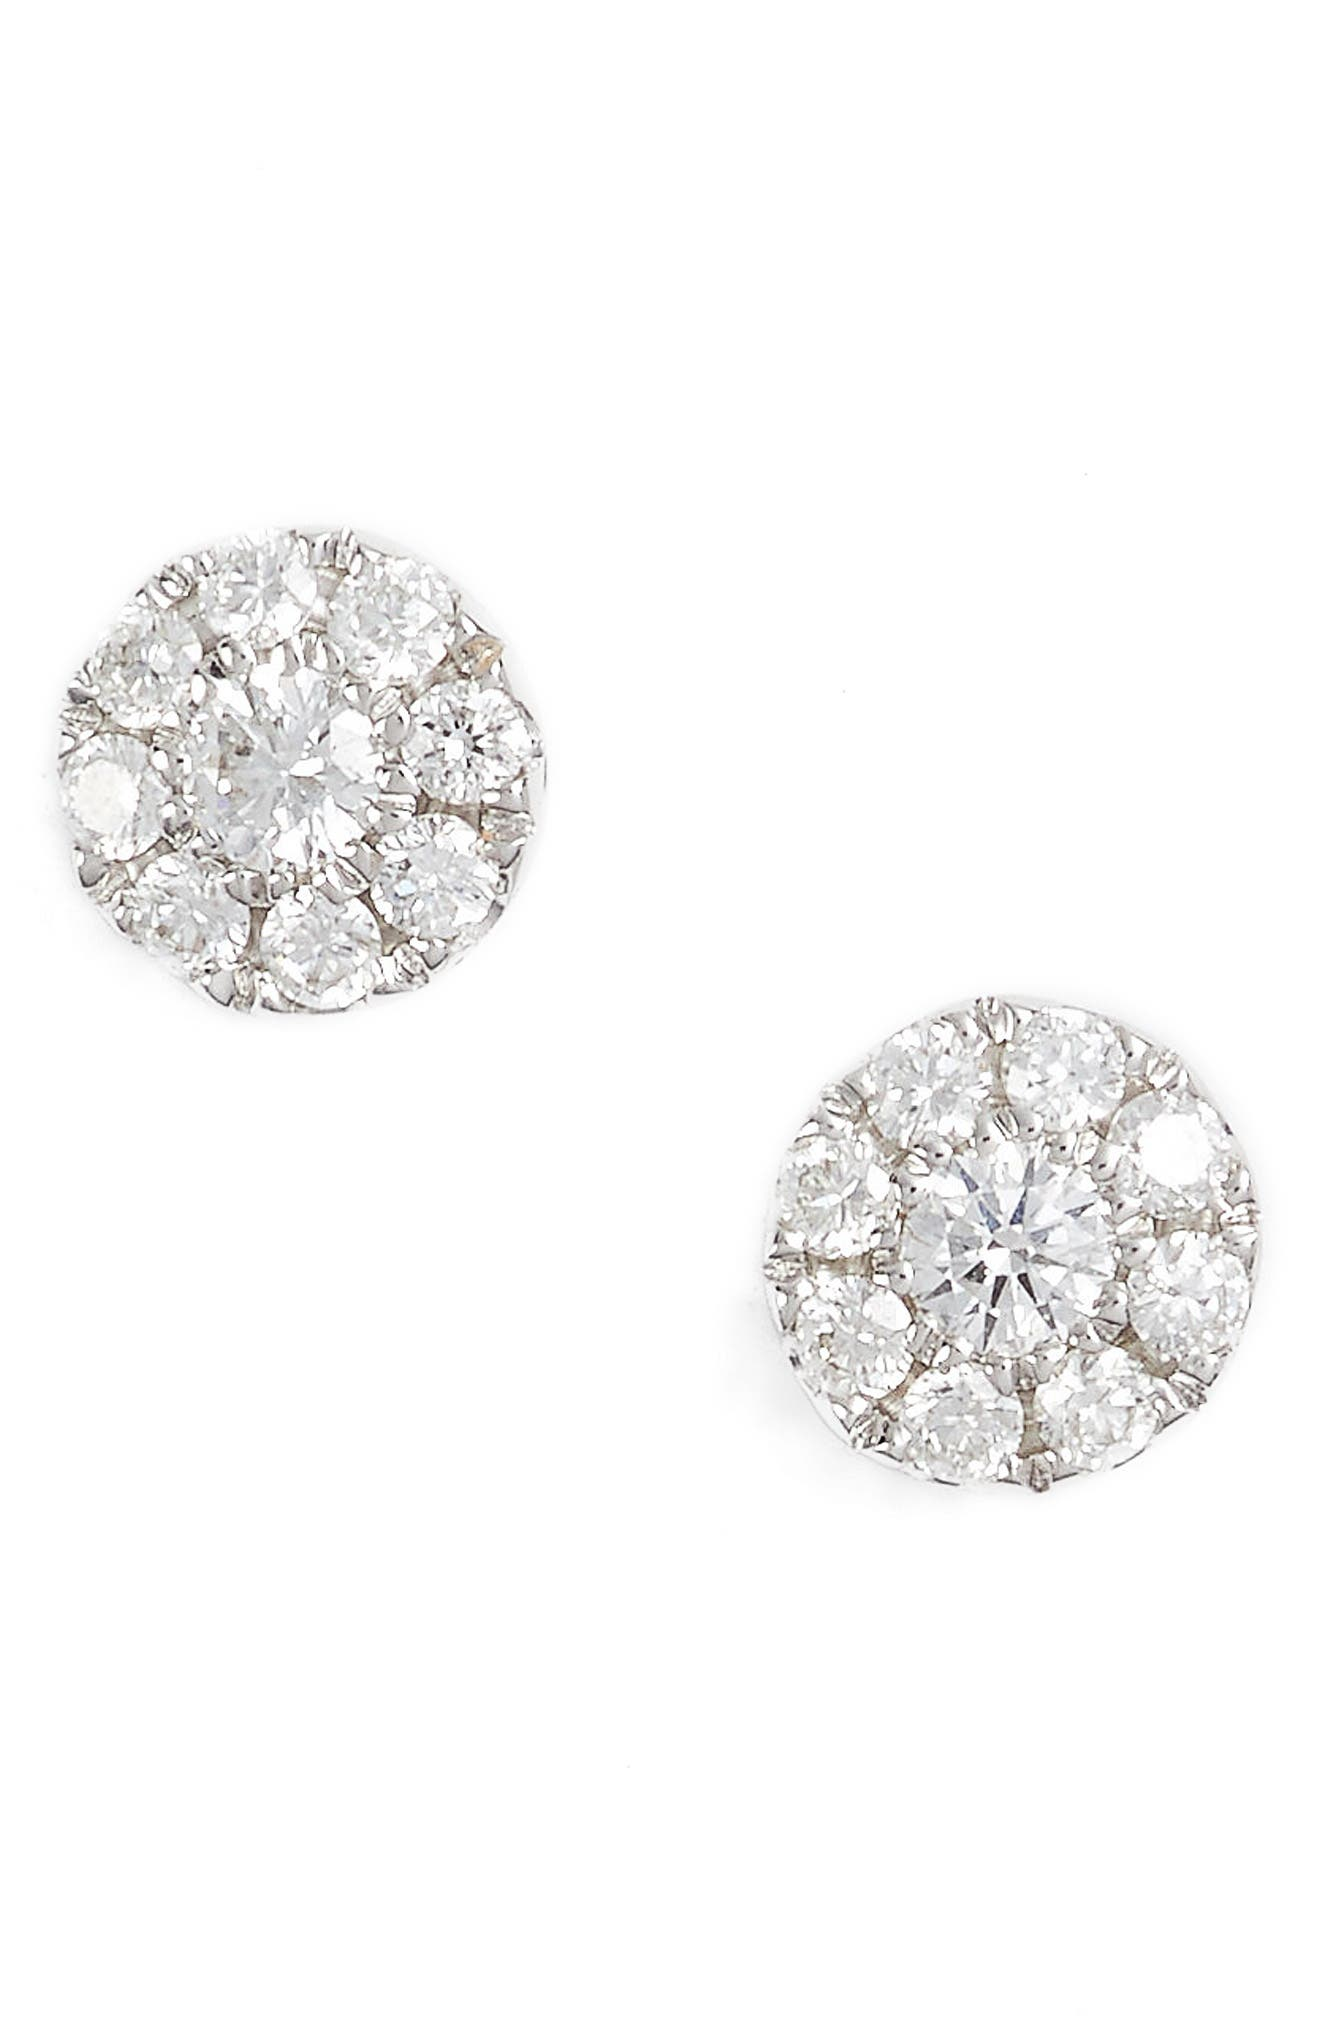 Main Image - Bony Levy Simple Obsessions Pavé Diamond Stud Earrings (Nordstrom Exclusive)